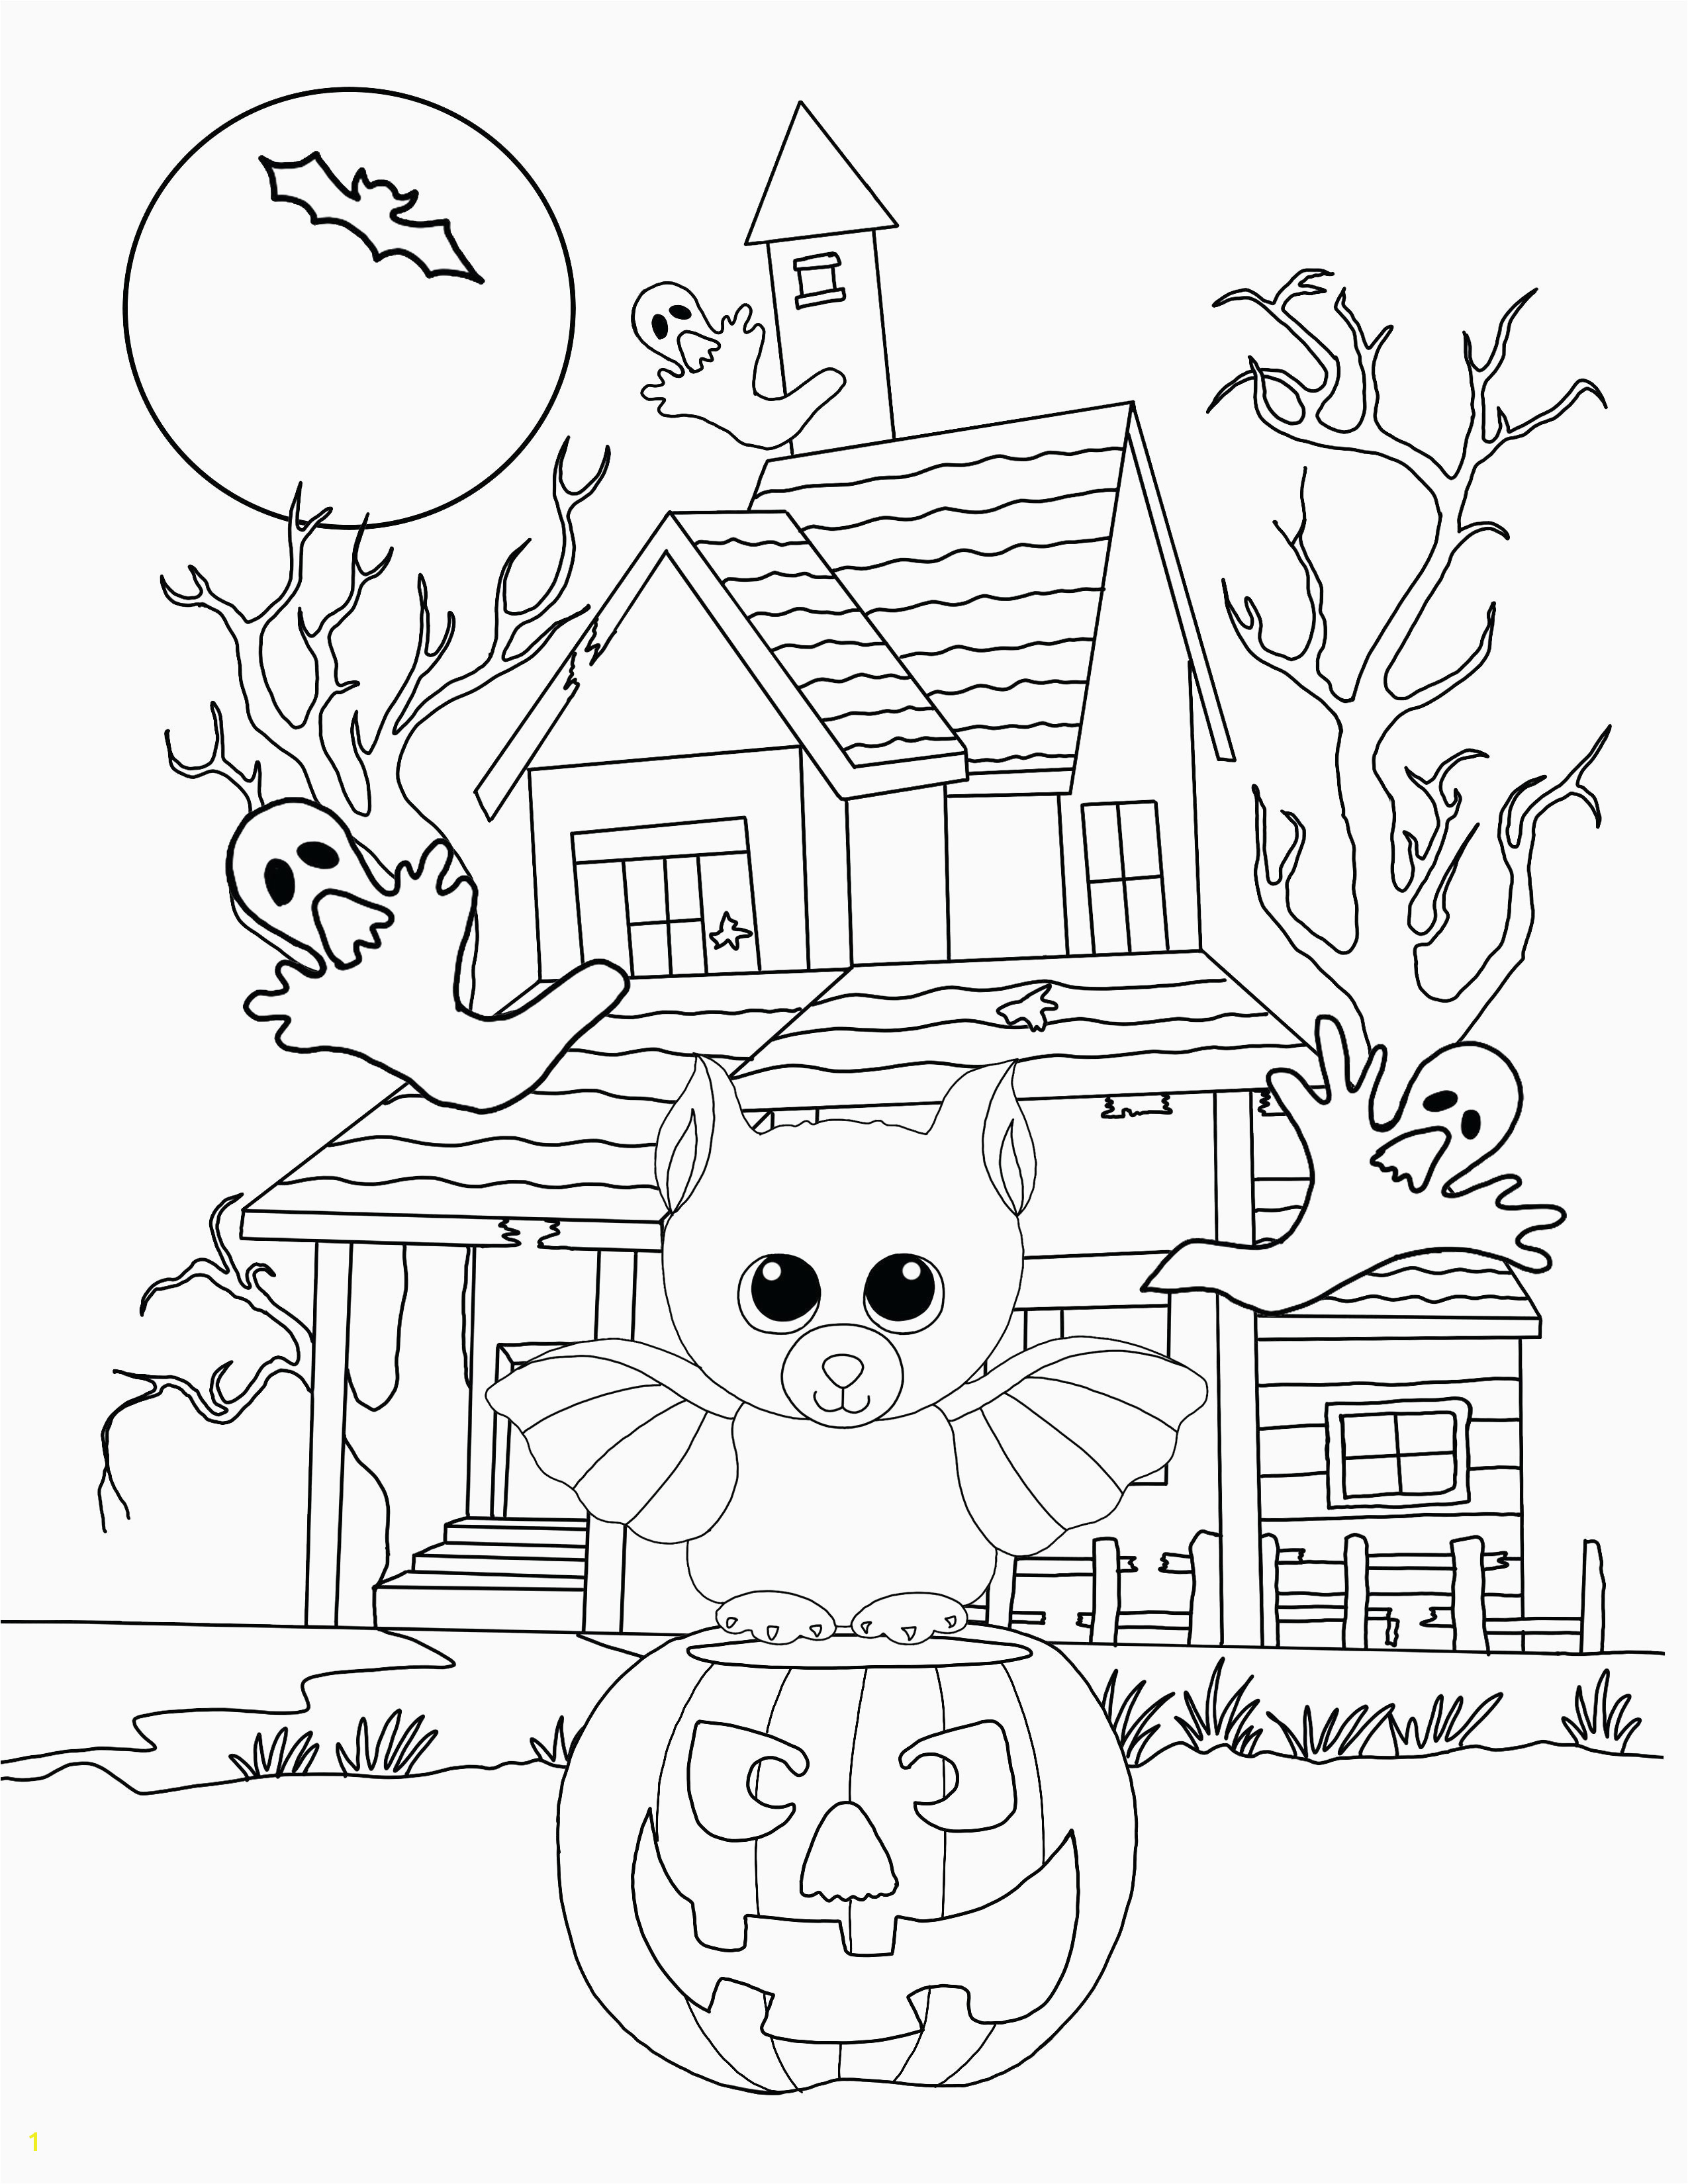 Mary Mary Quite Contrary Coloring Page Scary Coloring Pages for Halloween New Printable Coloring Pages